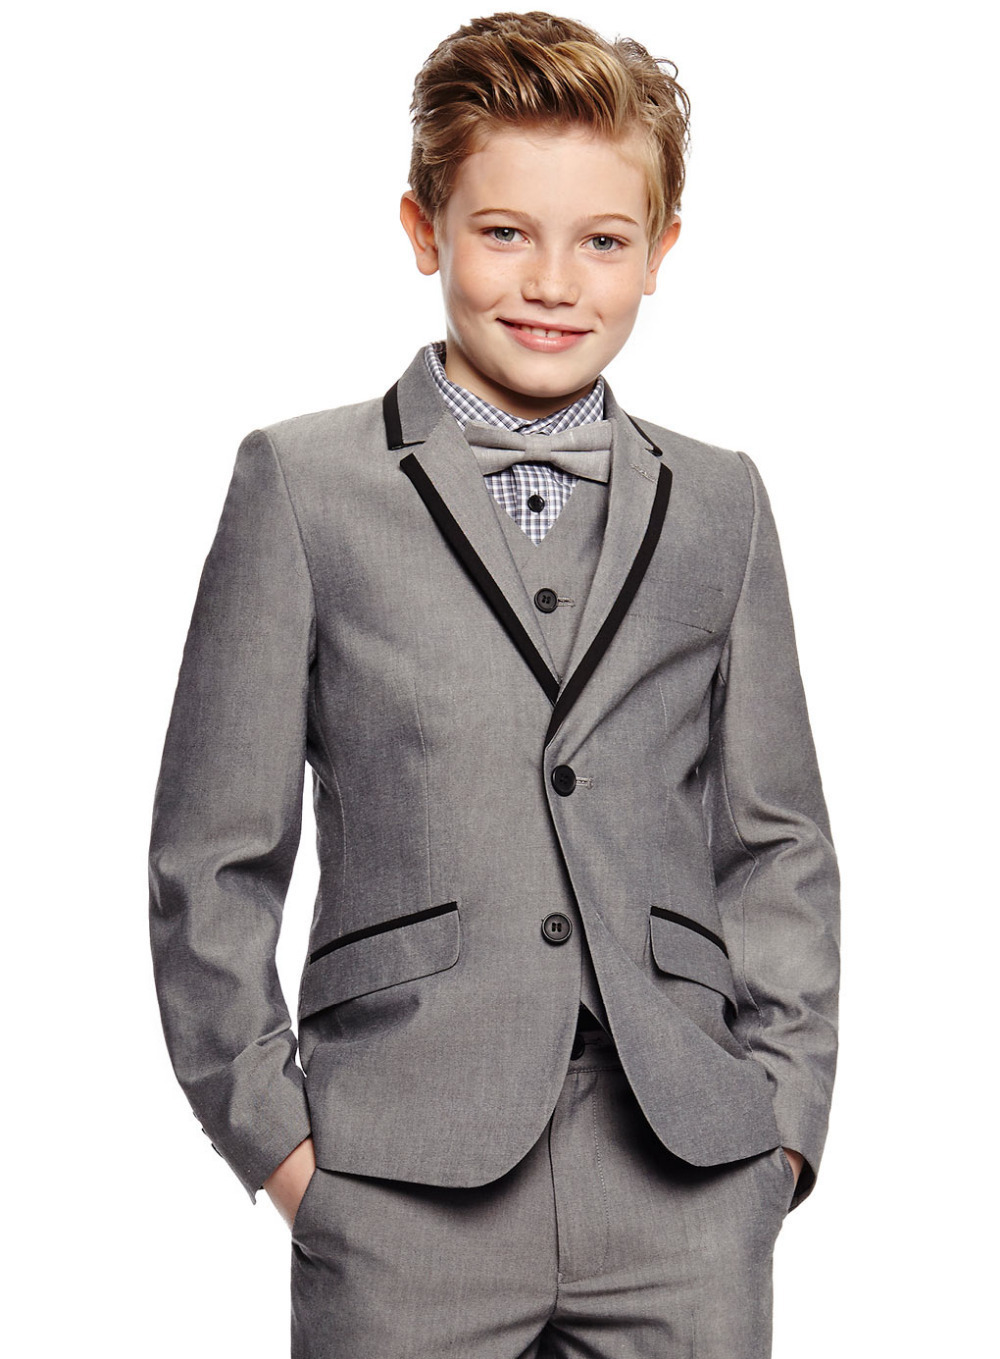 Fashion Children suits for party occasion customized boy suits set Childrens Clothing Suits & Blazers , blazer for boysFashion Children suits for party occasion customized boy suits set Childrens Clothing Suits & Blazers , blazer for boys